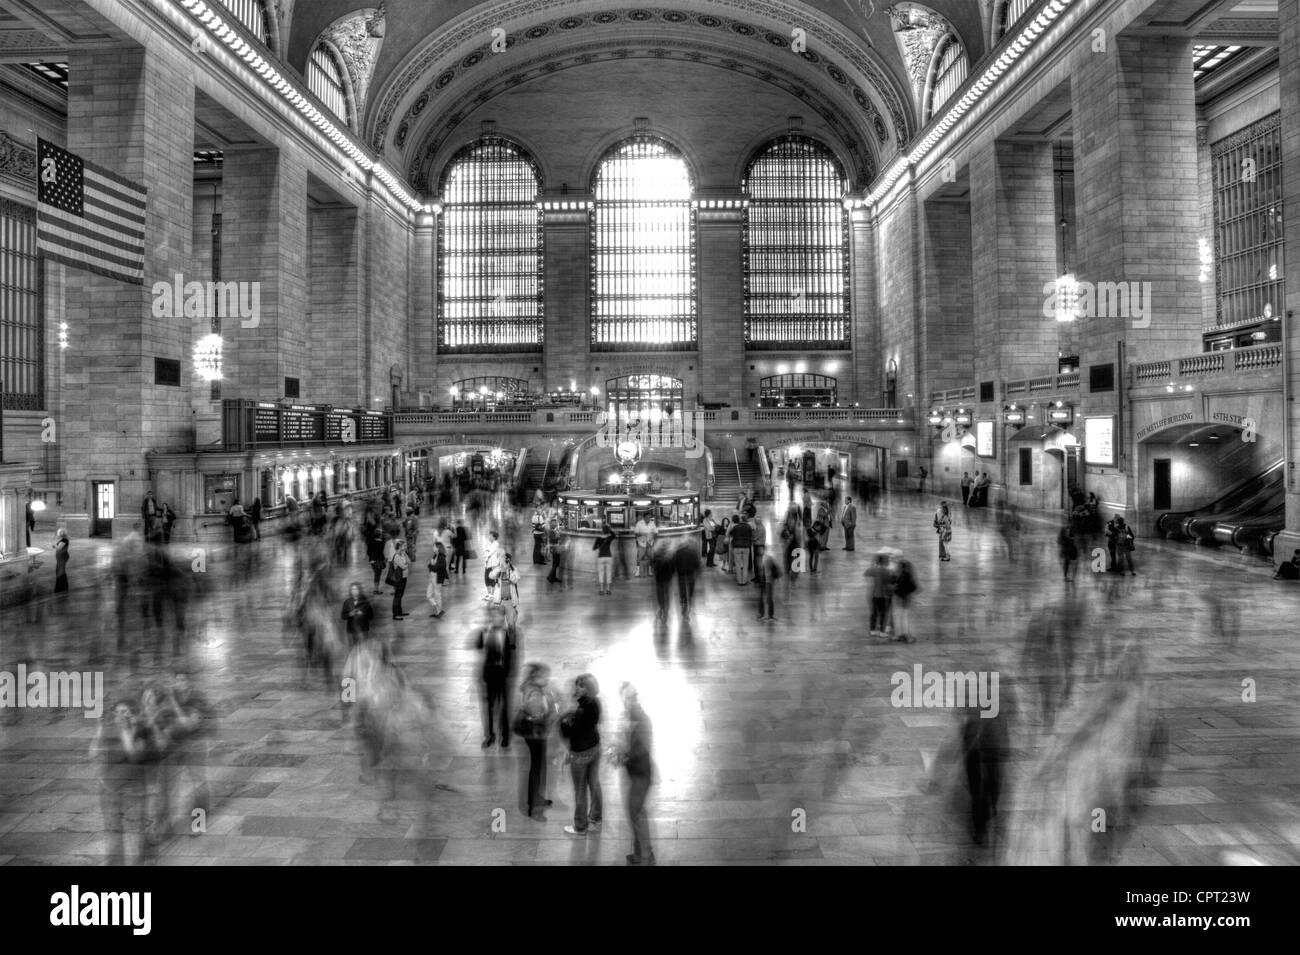 Inside grand central station the iconic hub of the subway system in manhattan new york city nyc usa